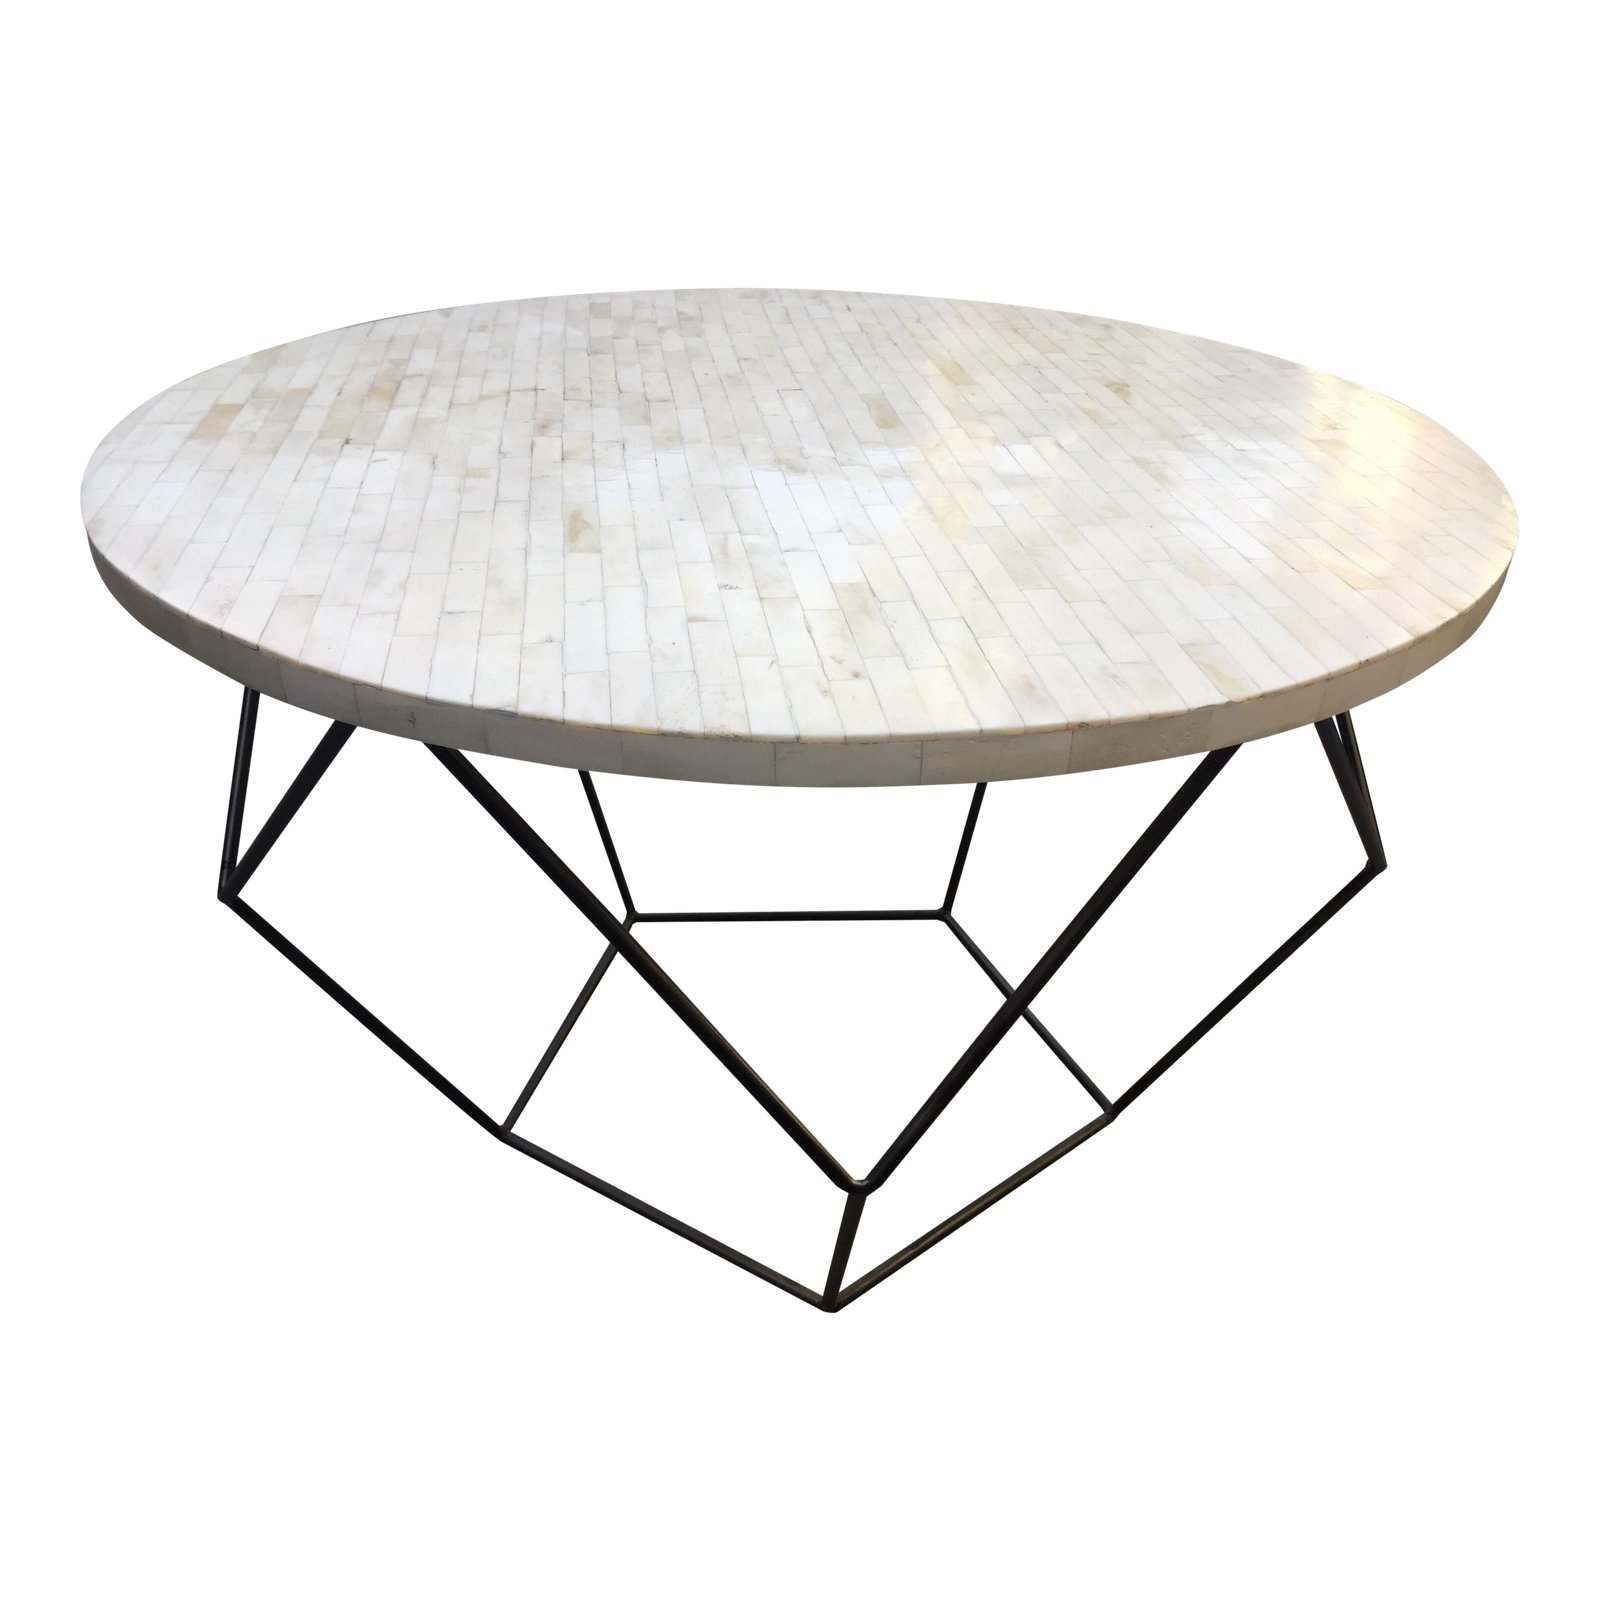 west elm octagon bone inlay side coffee table chairish sidecoffee accent ceramic ginger jar lamps oversized sectionals kitchen linens with small nesting tables end cabinet pottery